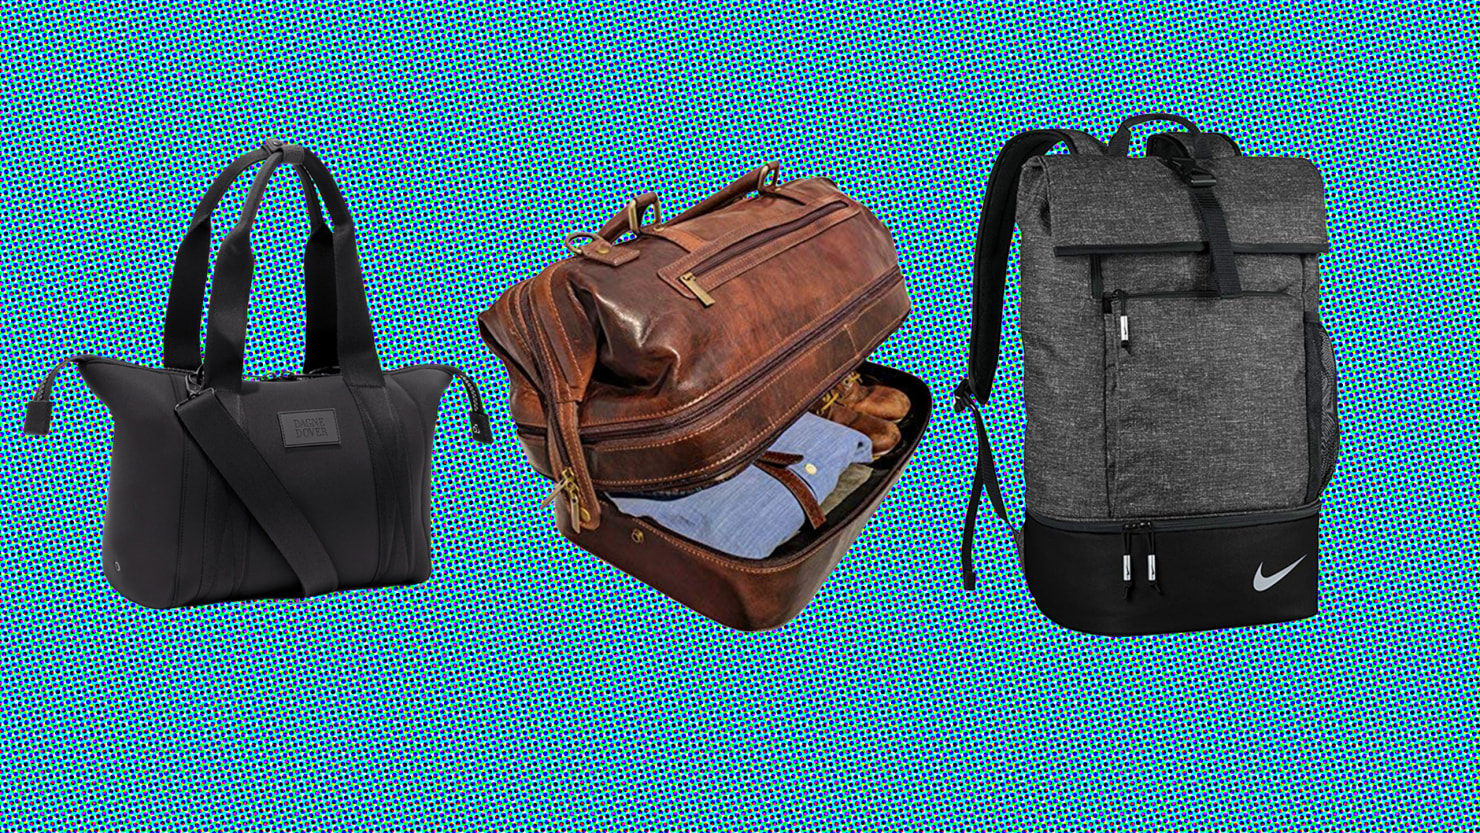 Scouted: The Best Bags to Take to Work and to Your Workout